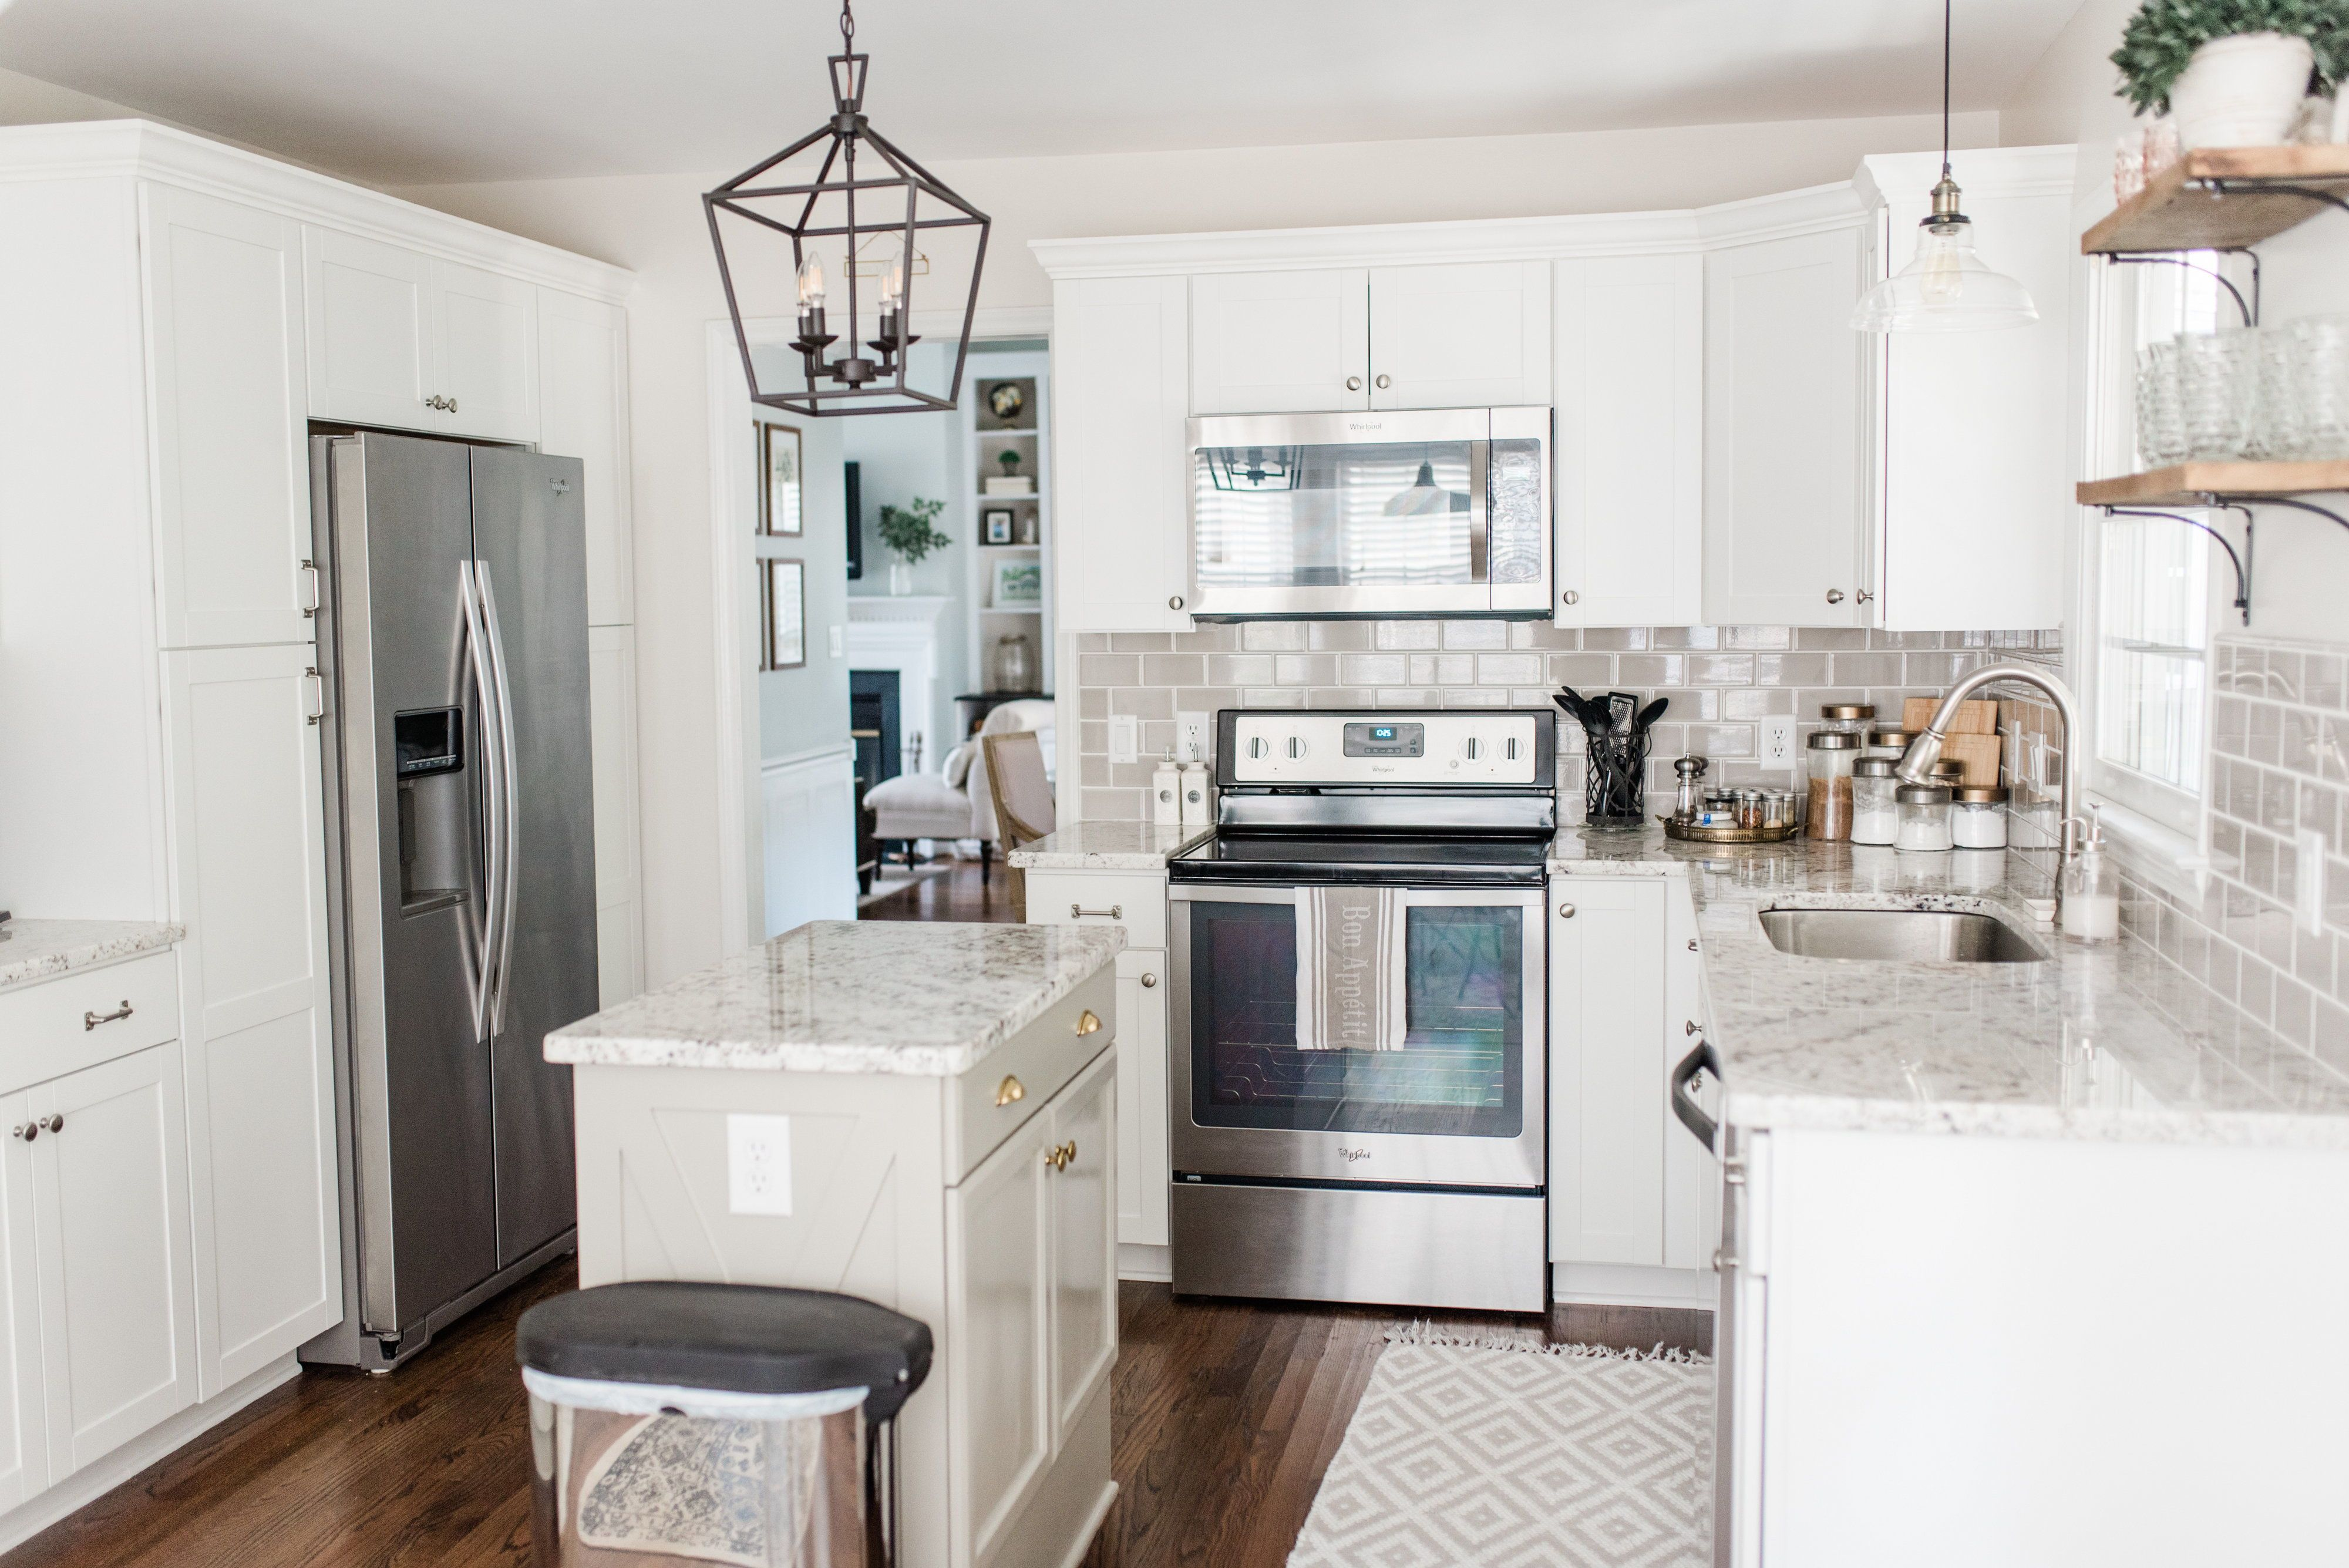 Dorian Gray Kitchen Cabinets Island And Benjamin Moore Perfect Gray Walls Elizabeth Burns Design In 2020 Diy Kitchen Island Cottage Kitchen Design Cheap Cabinets